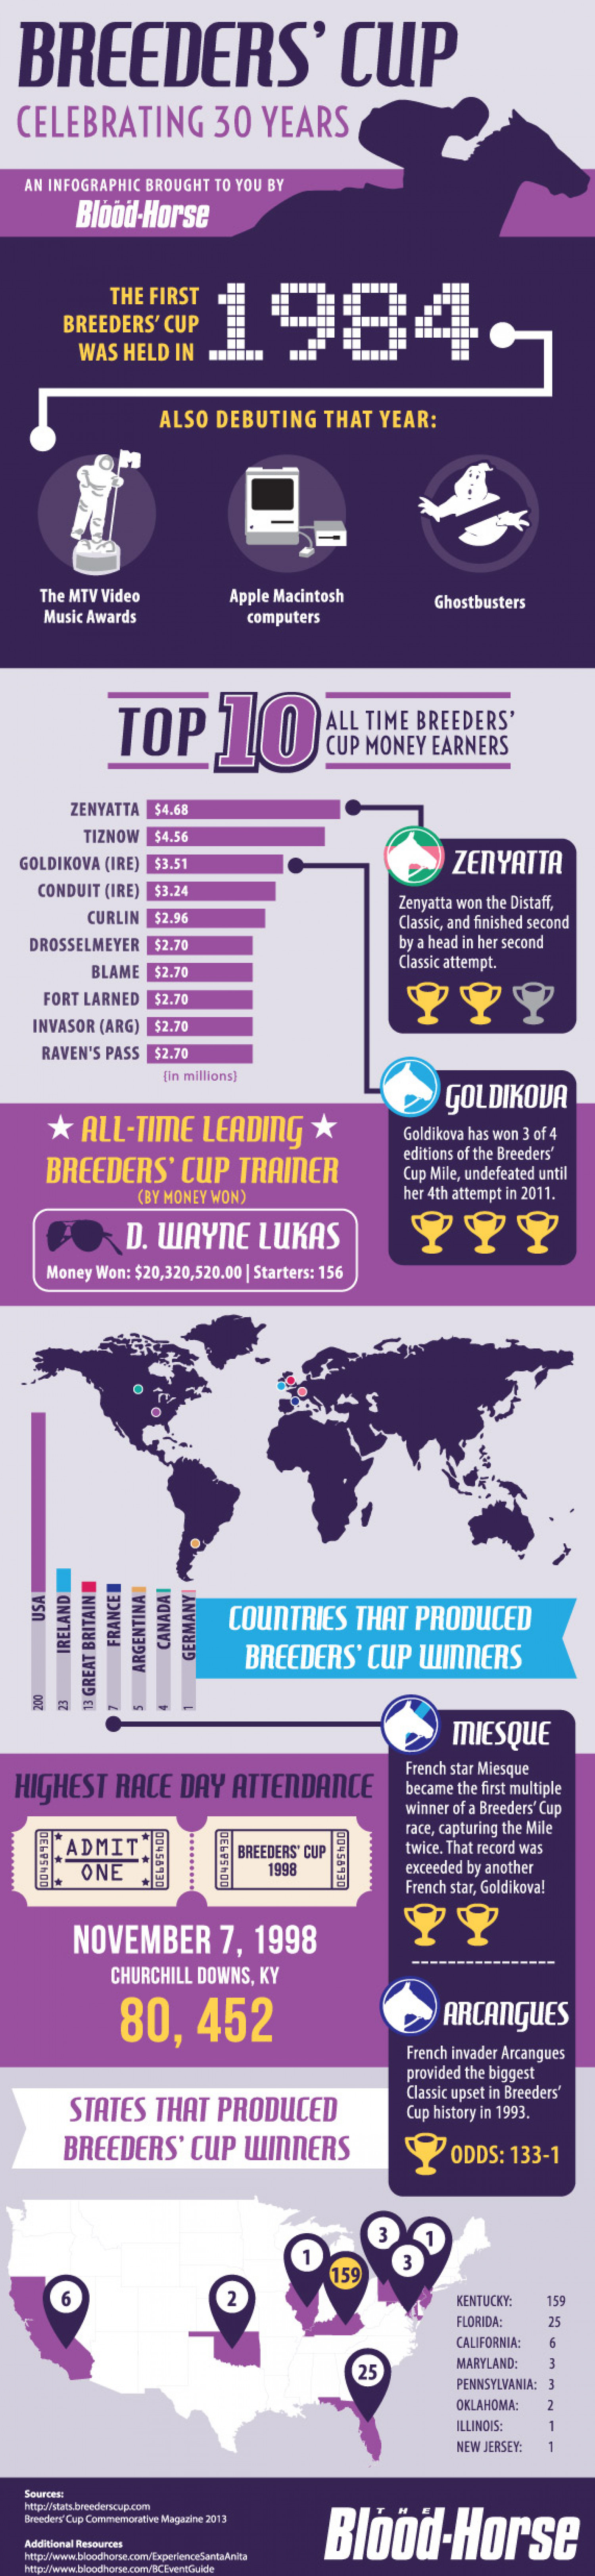 Breeders' Cup: Celebrating 30 Years Infographic